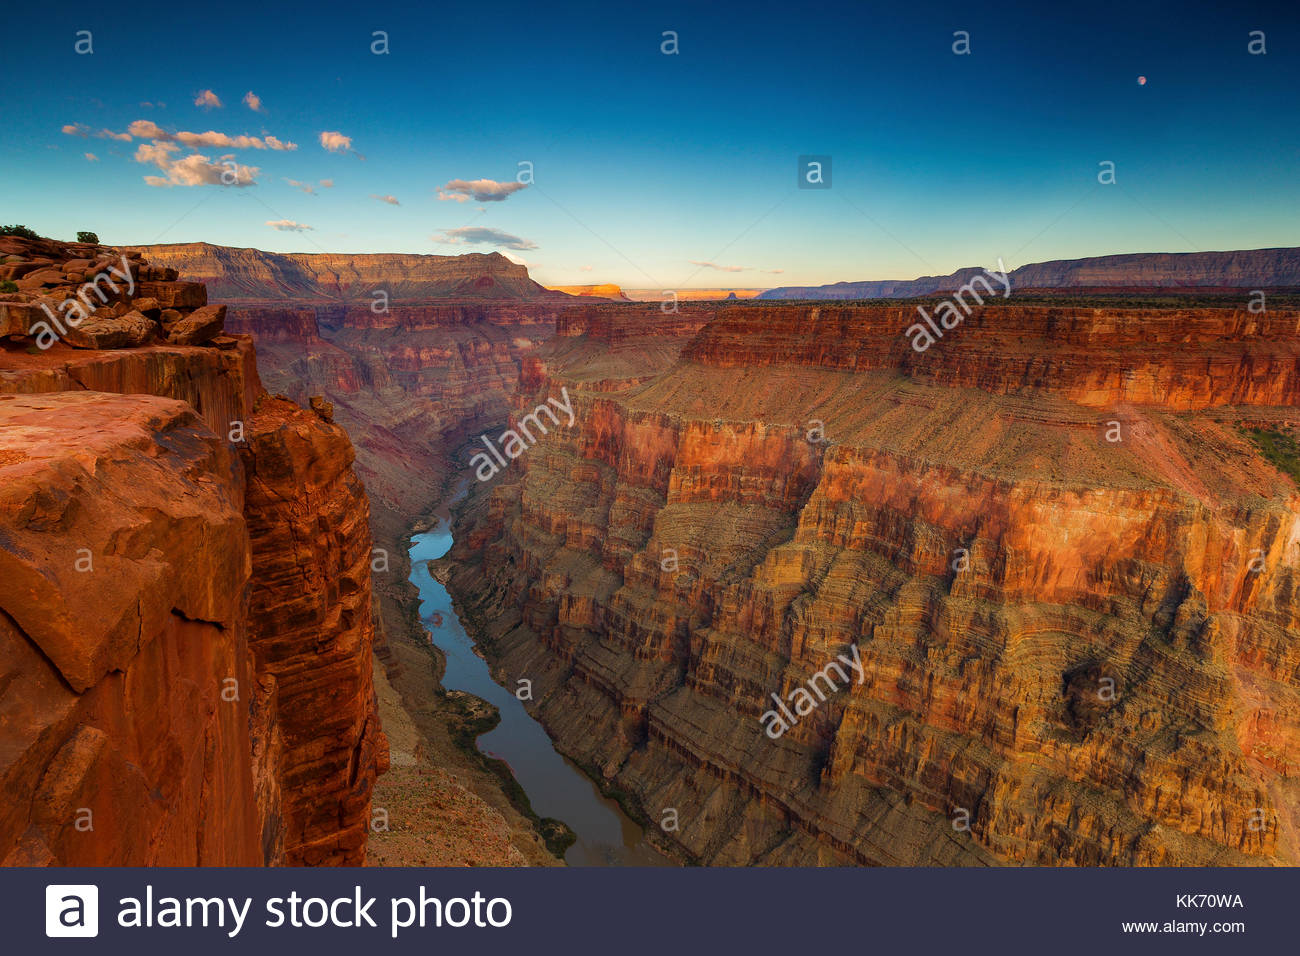 The full moon rises over the Grand Canyon and Colorado River in this view from the Tuweep Overlook (also spelled - Stock Image